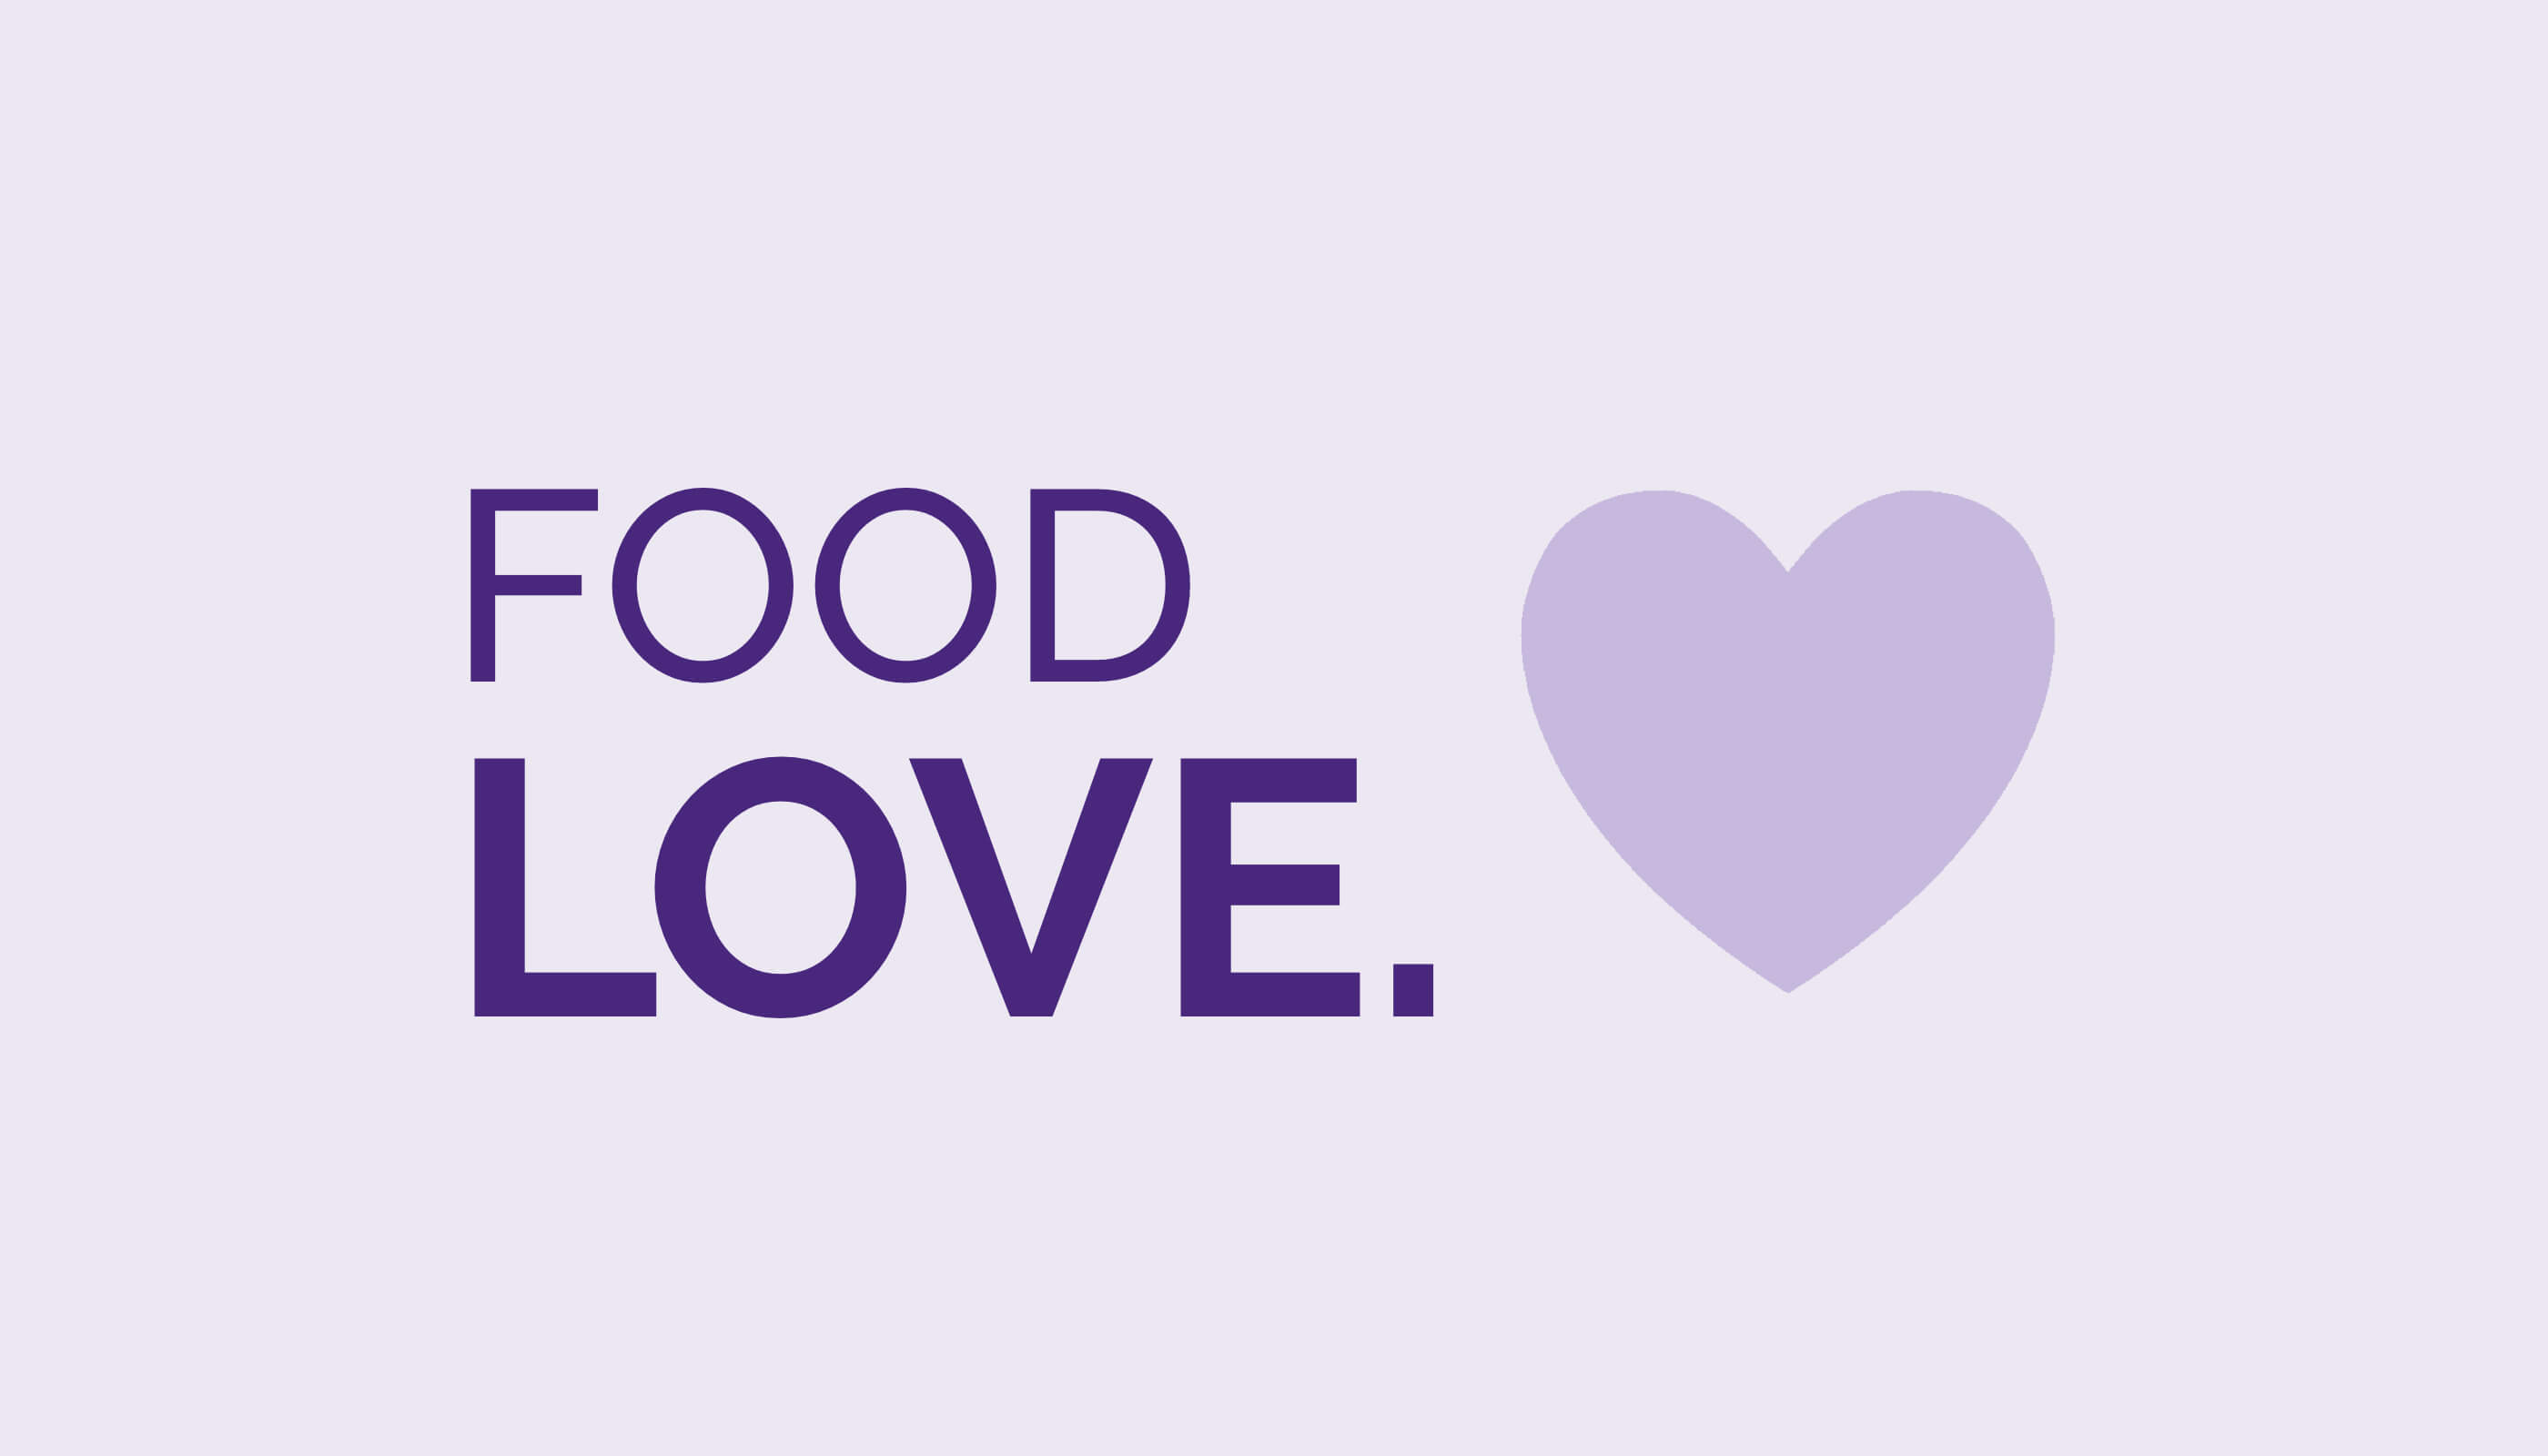 Image of heart with Food Love logo.